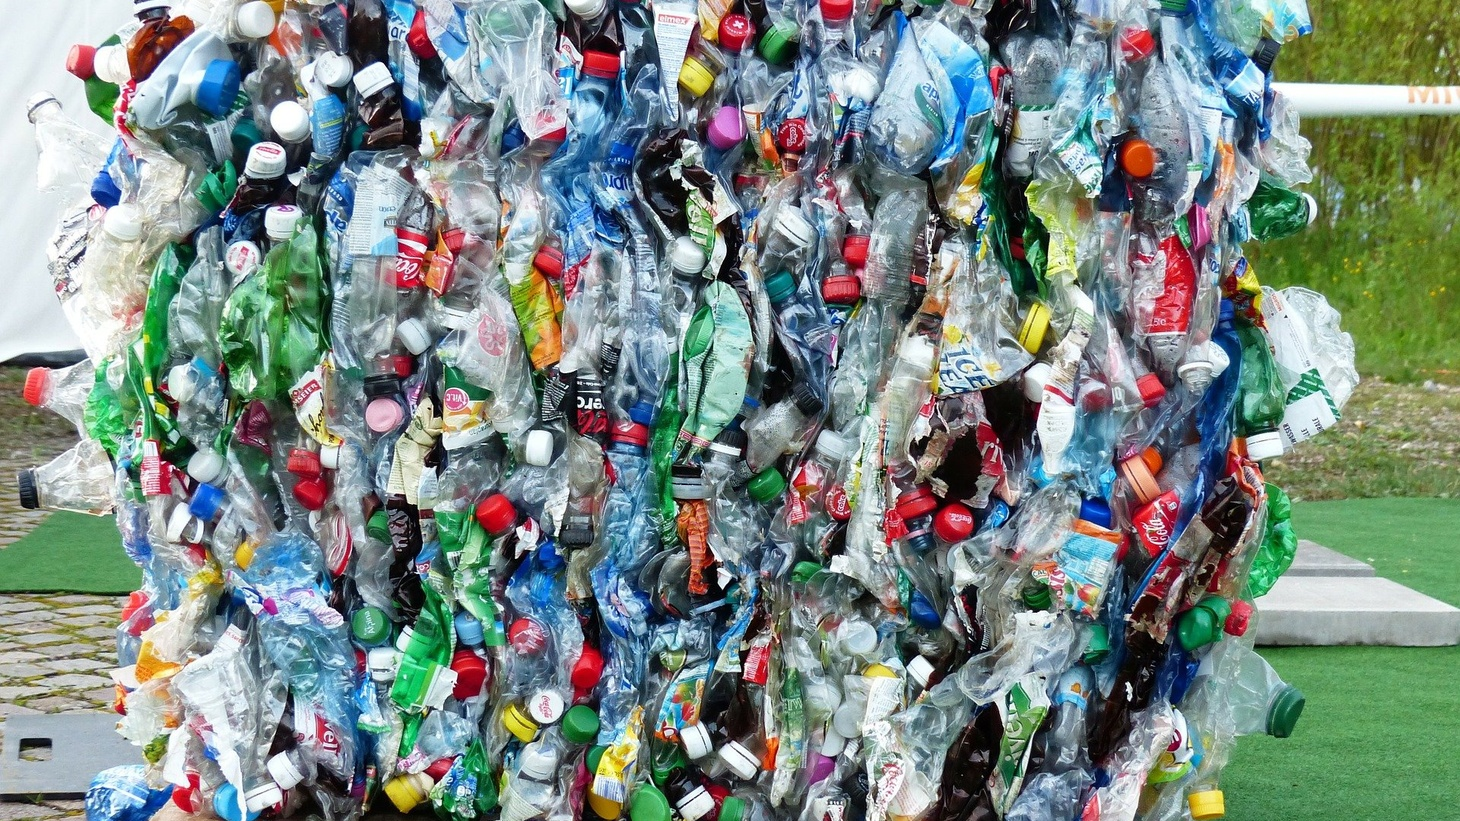 America's largest oil and gas companies are the makers of plastic, and they convinced people that most plastic could and would be recycled. However, only a fraction of plastic actually gets recycled. That's according to NPR's Laura Sullivan.